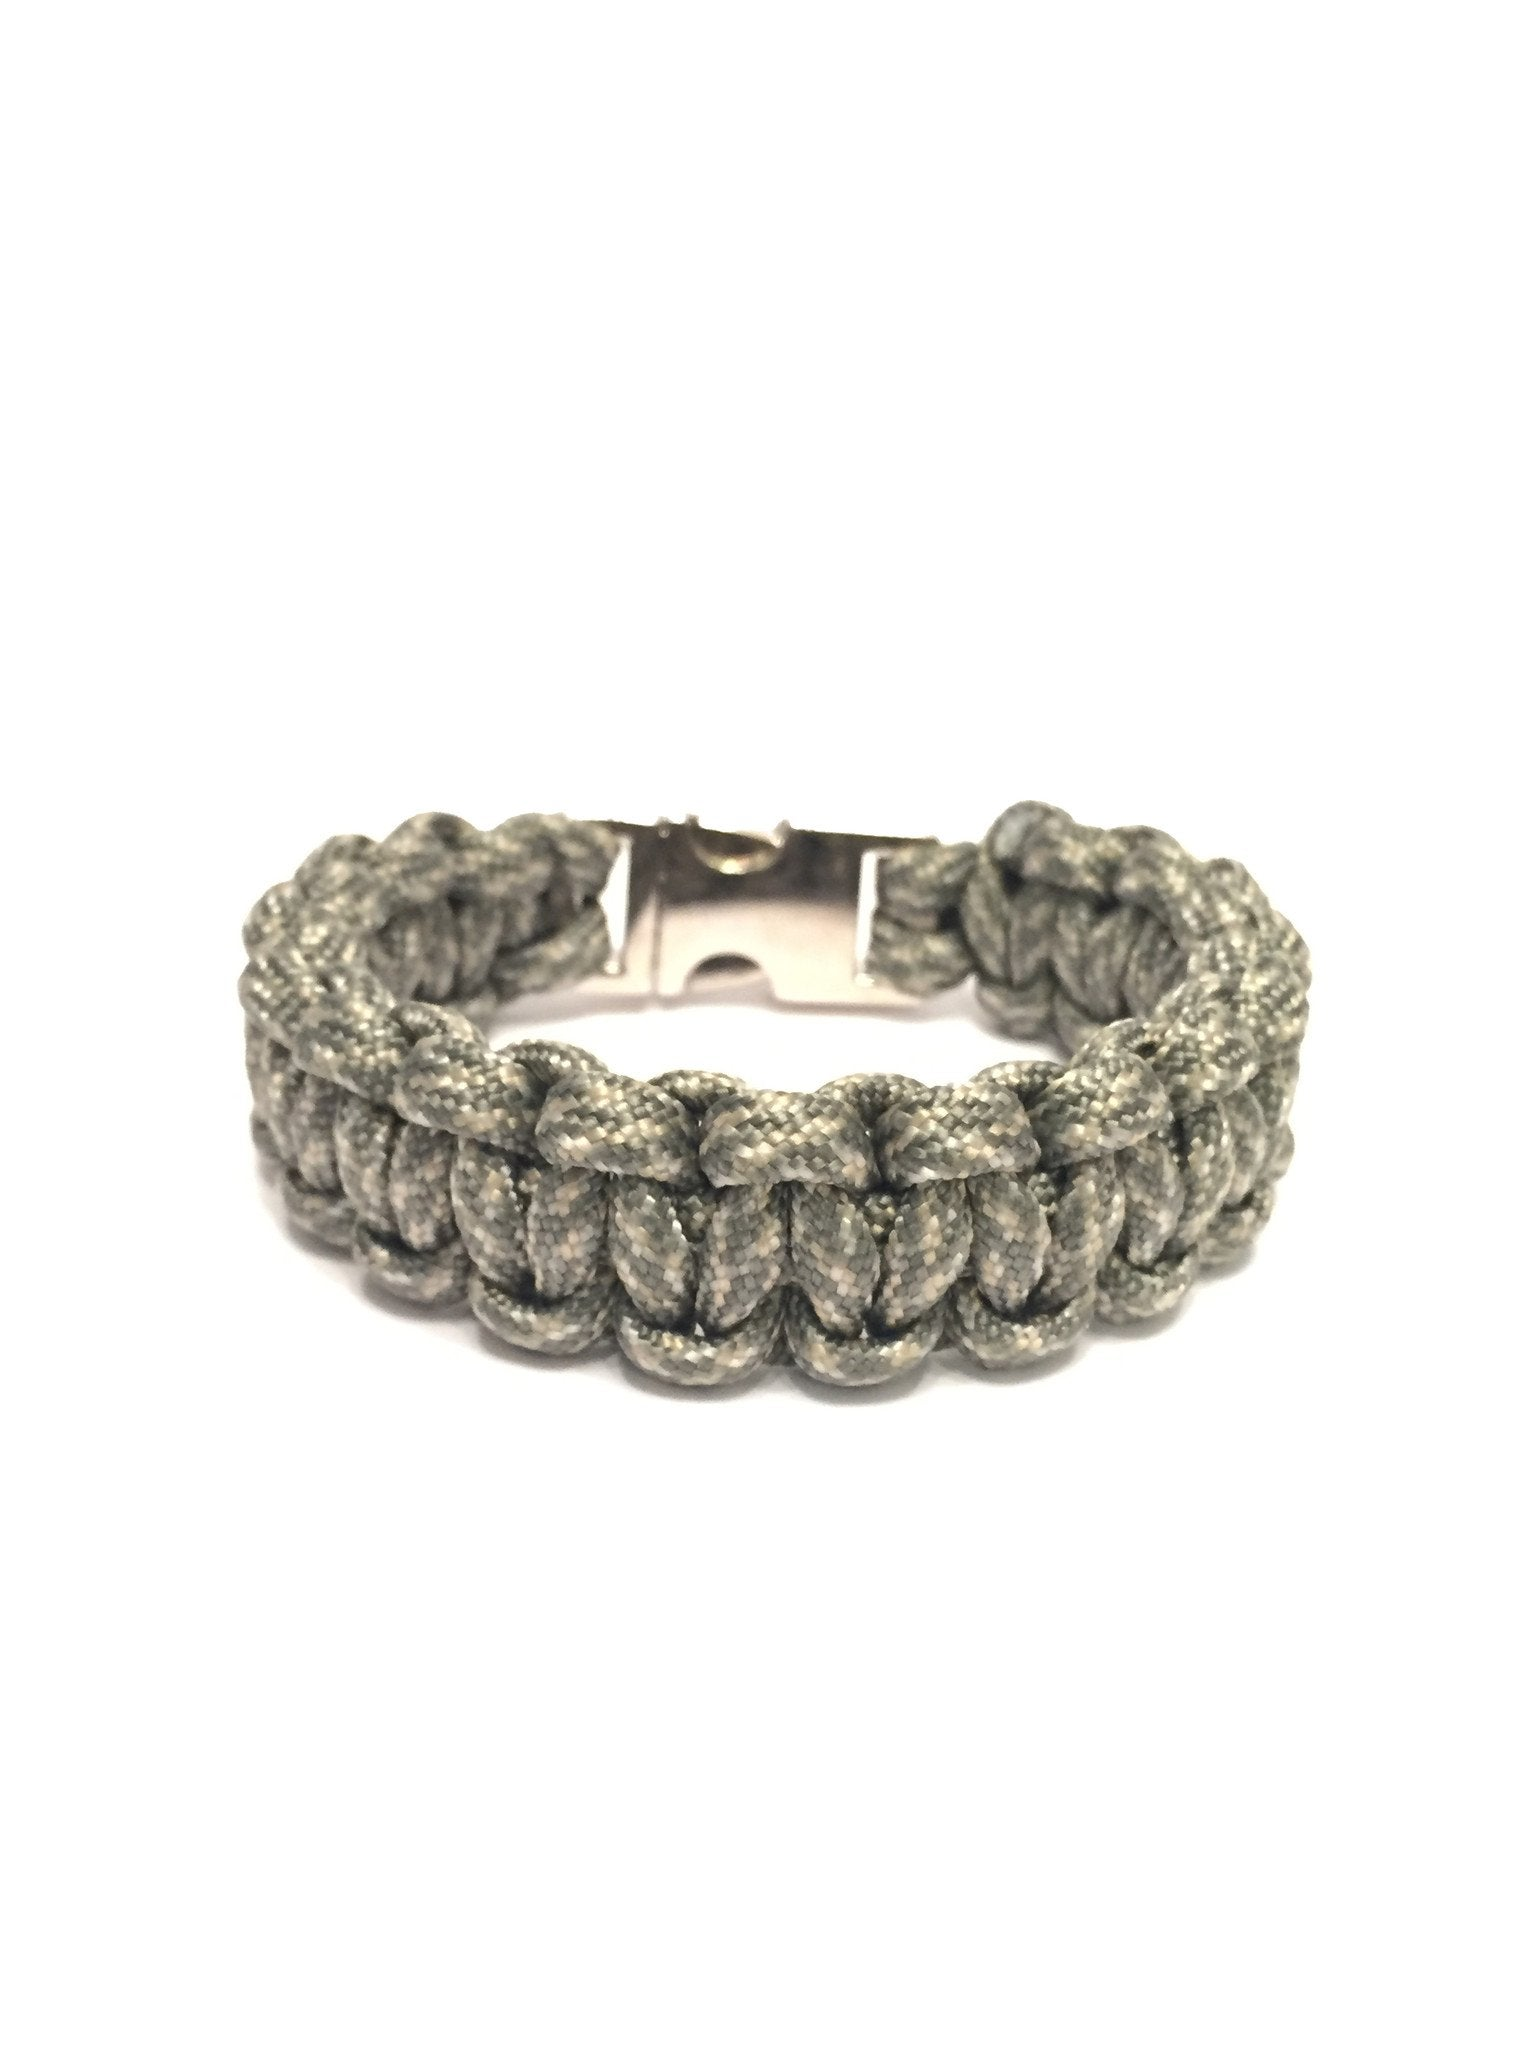 Mens Jewelry and Women Jewelry Support Our Troops Paracord ...